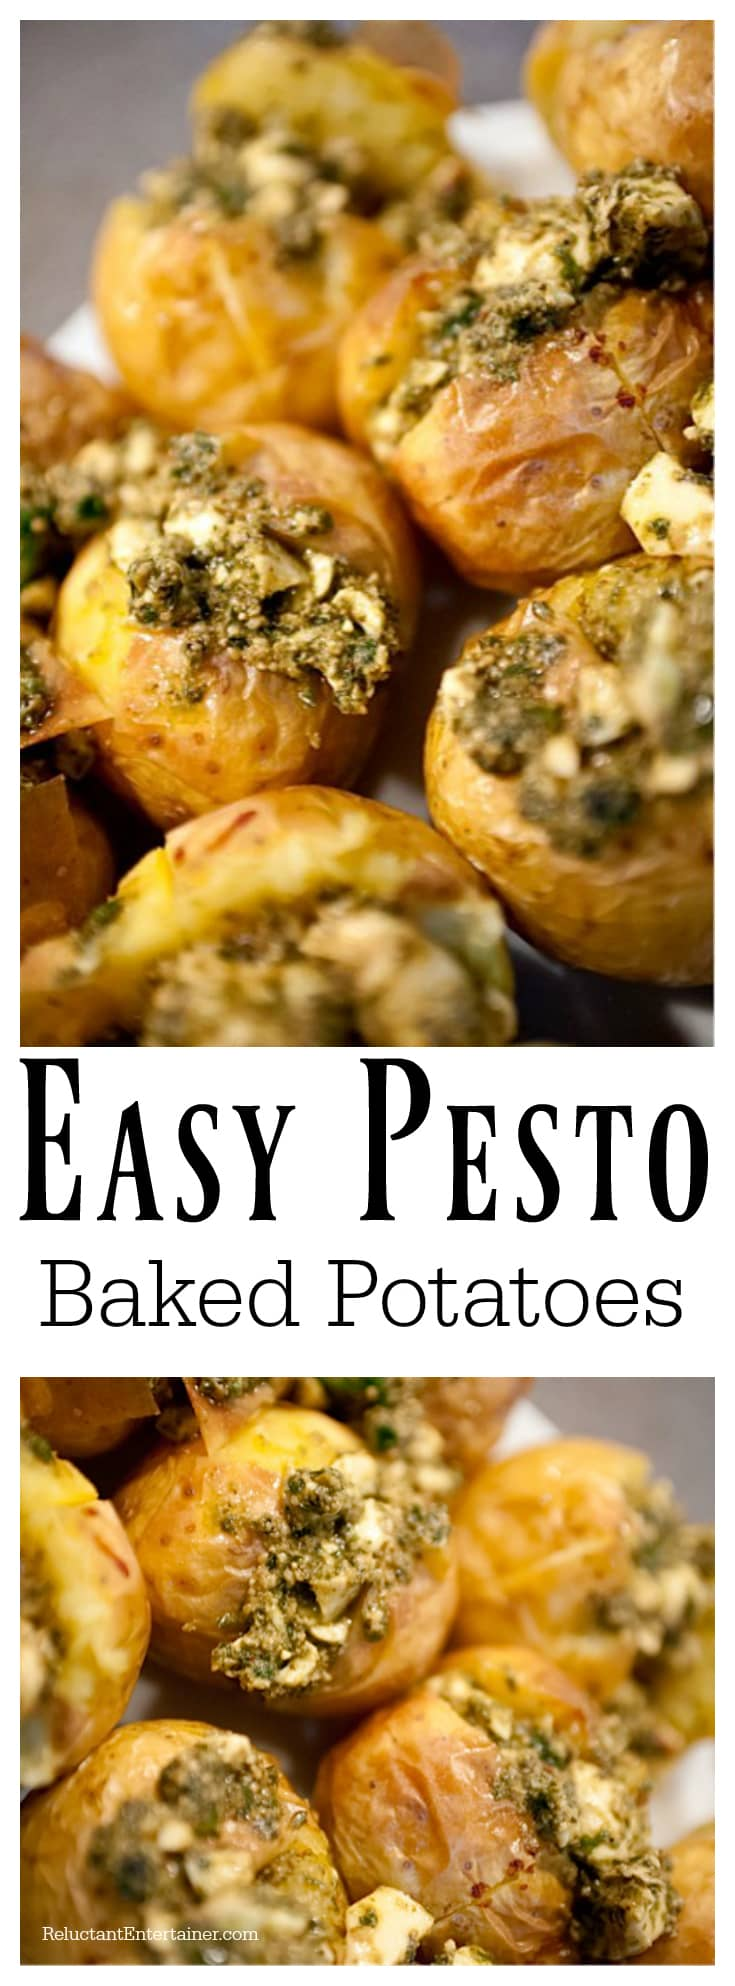 Easy Pesto Baked Potatoes Recipe at ReluctantEntertainer.com